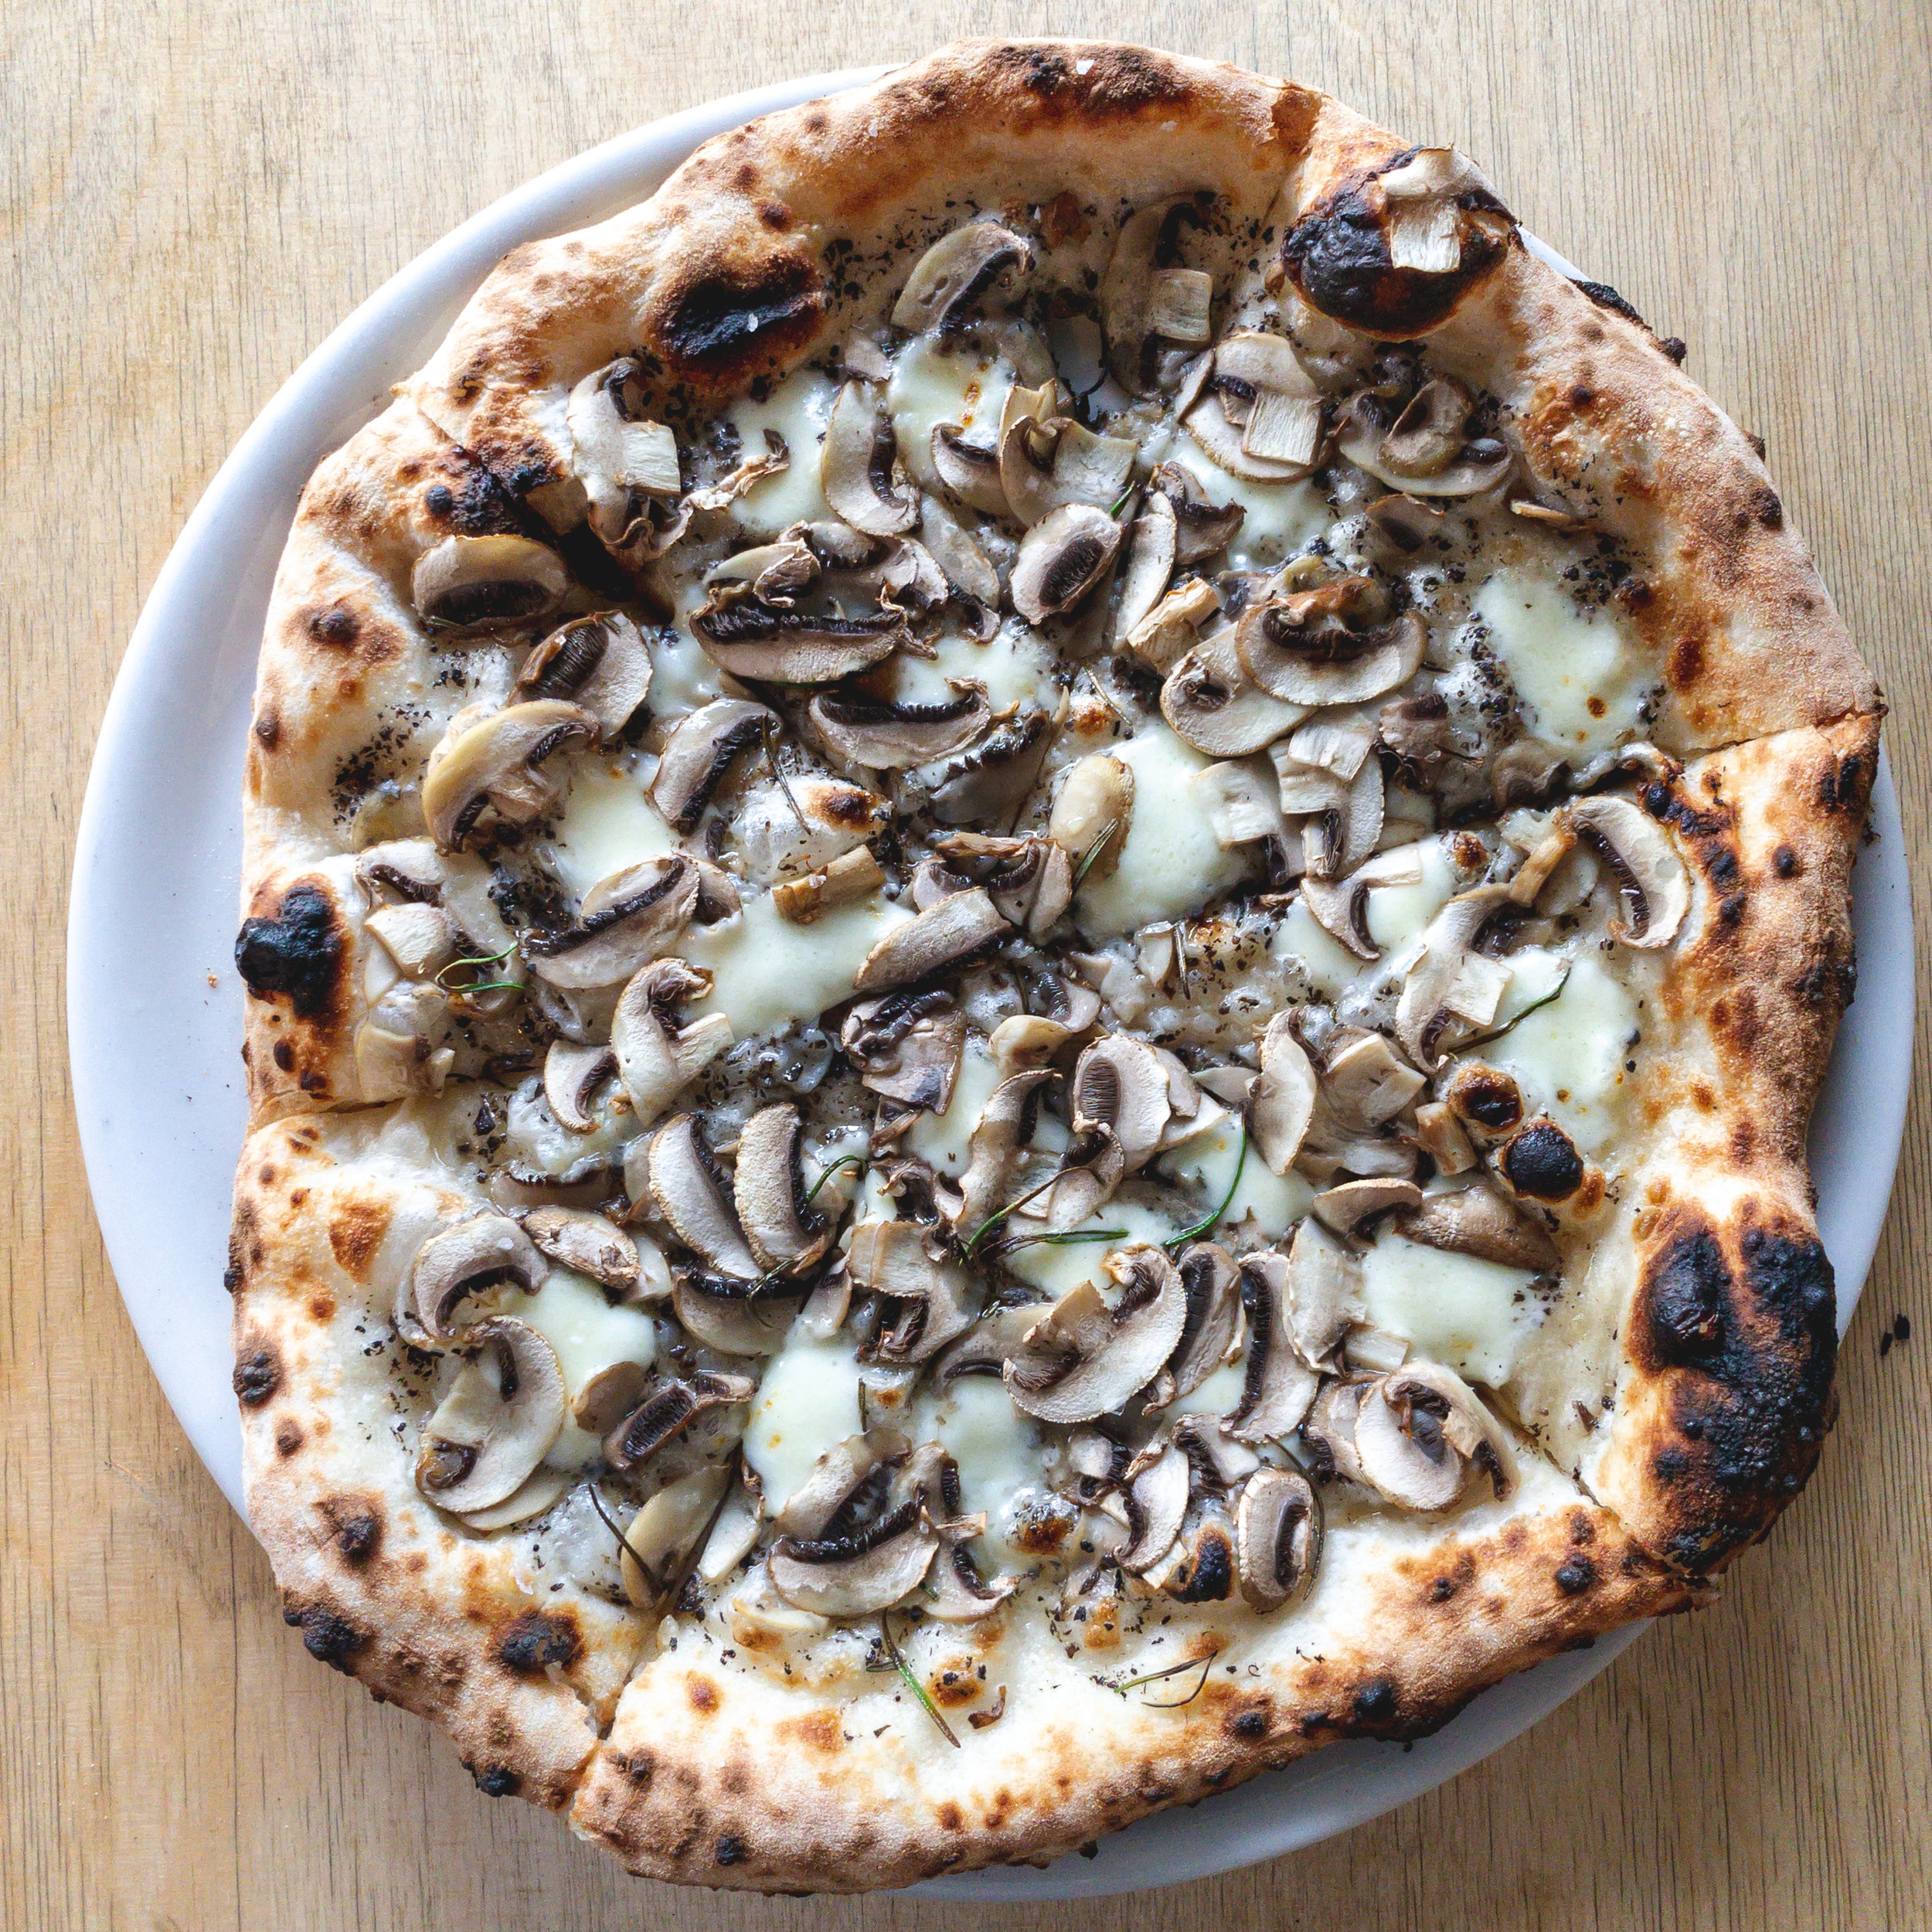 Wild Mushroom: truffle oil, mushrooms, rosemary, sea salt, mozzarella. (v)